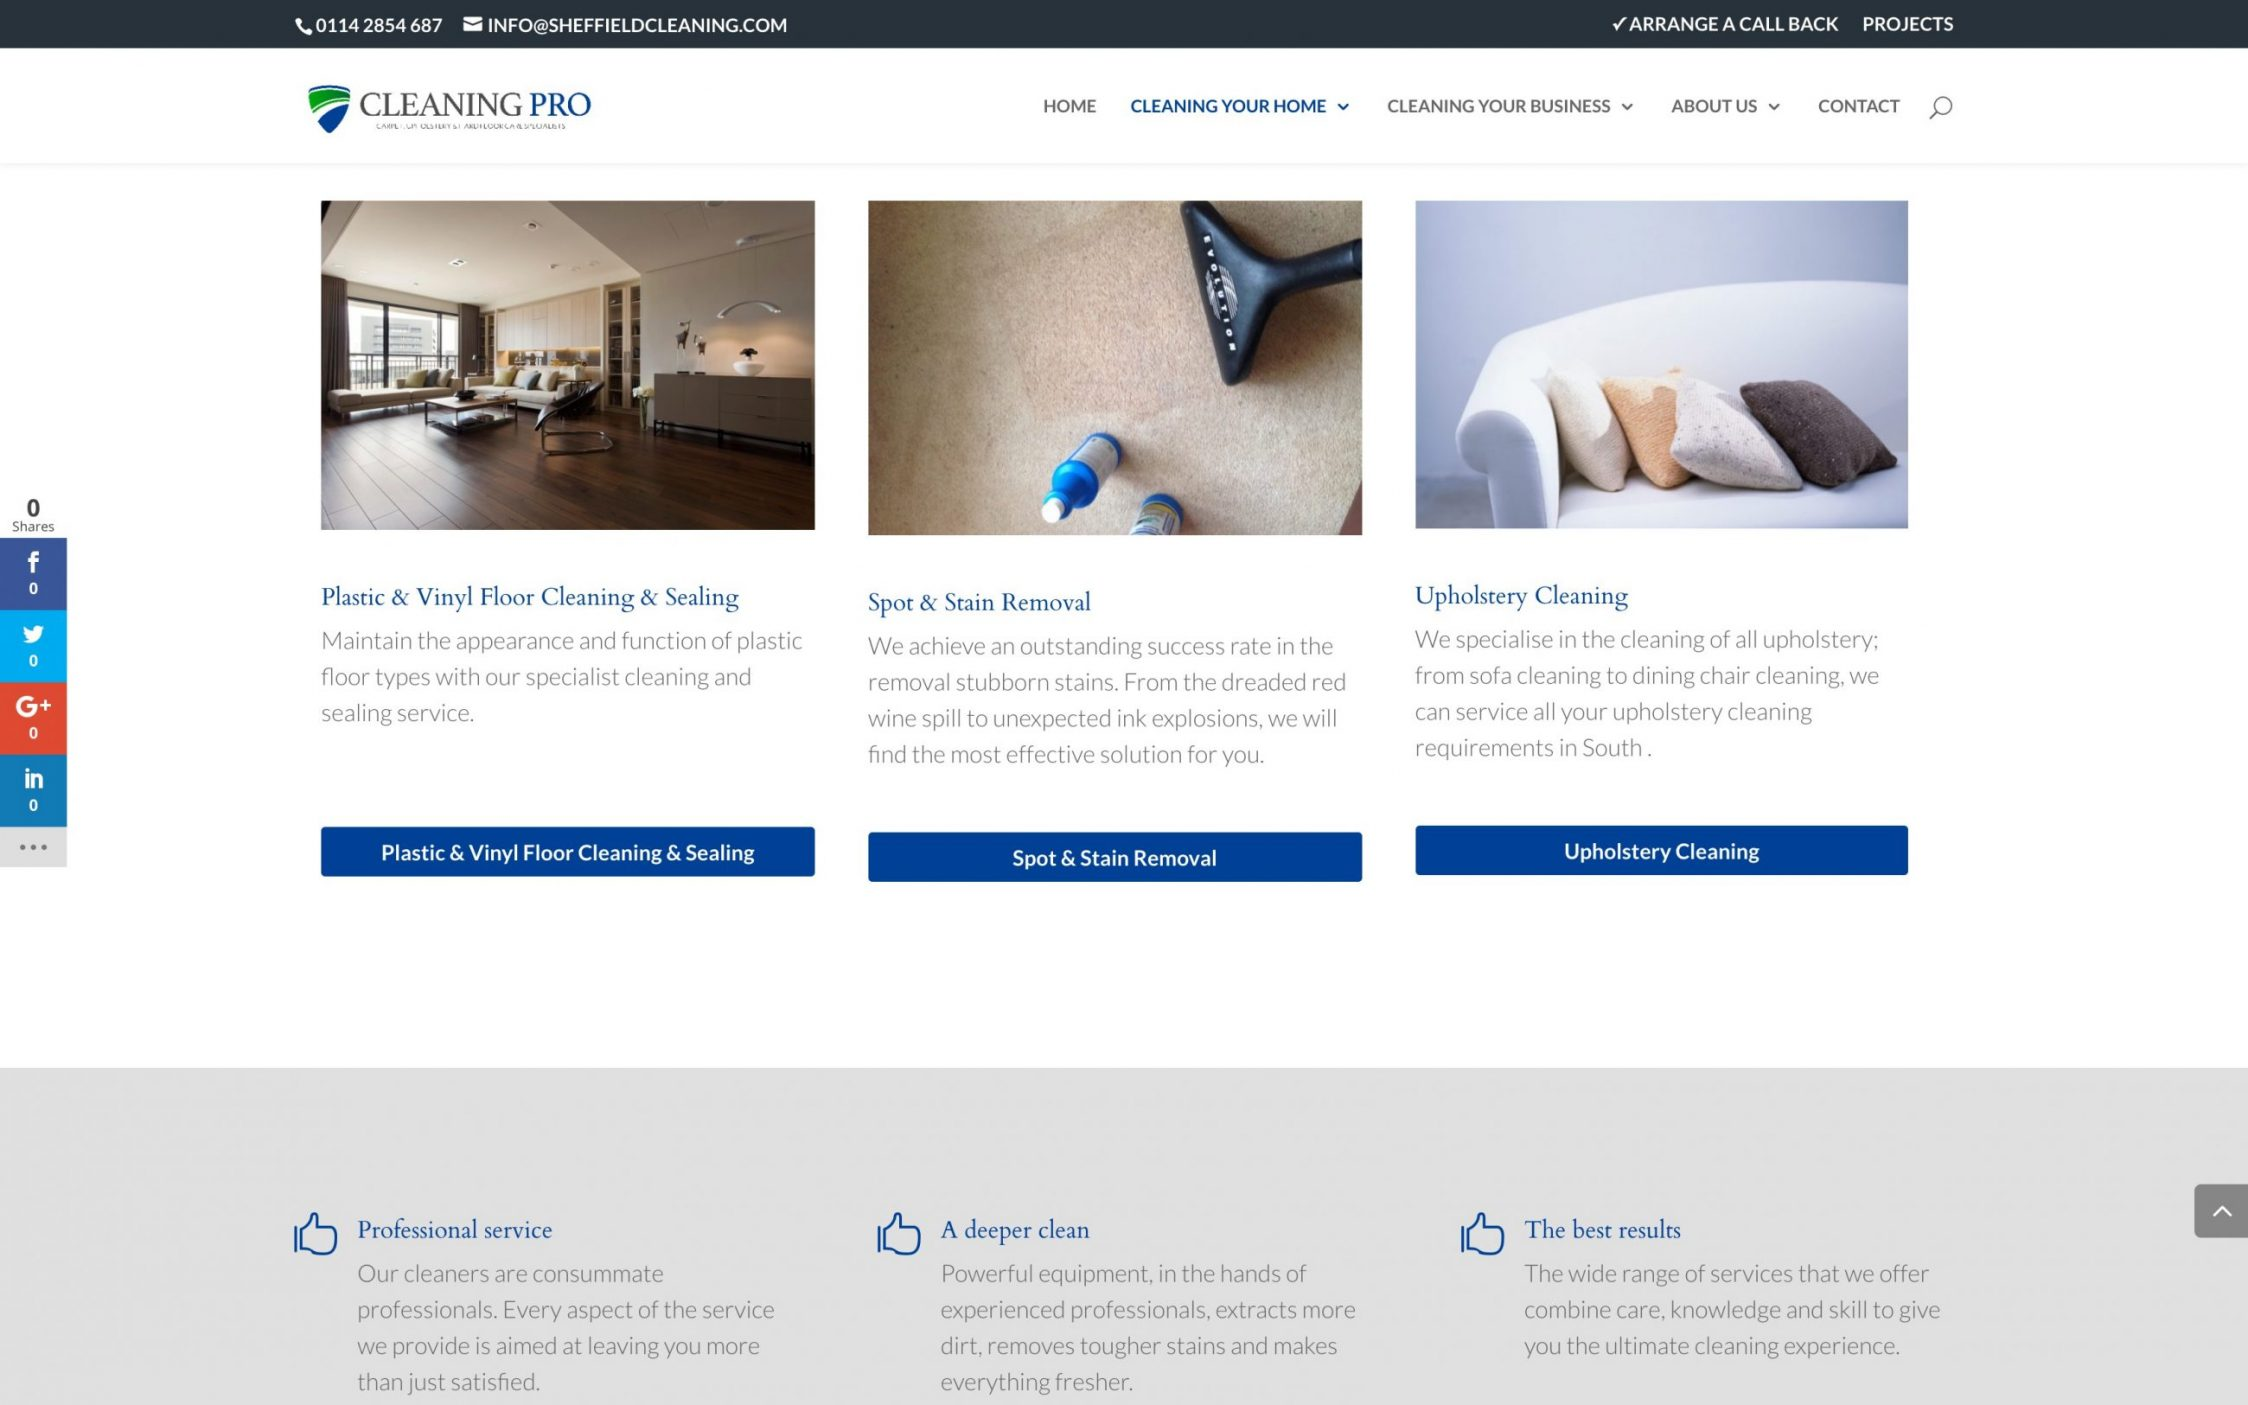 Screen Shot 2016 11 09 at 15.52.48 - Carpet cleaning business webdesign